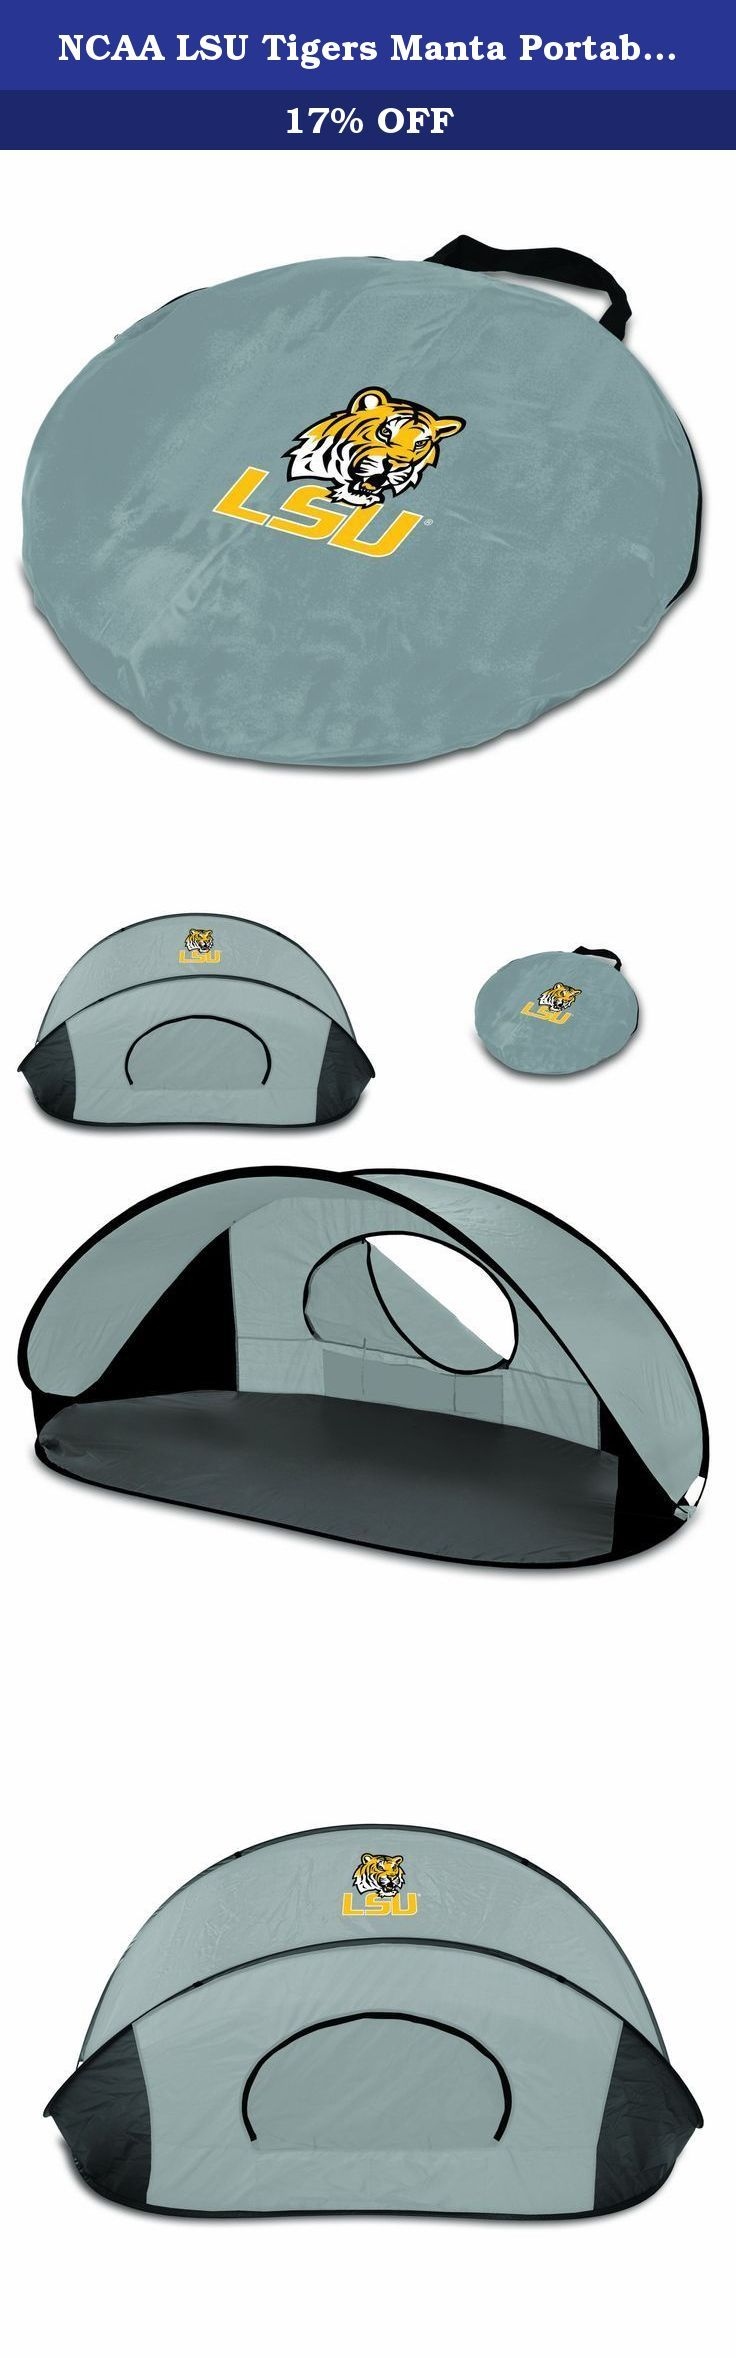 NCAA LSU Tigers Manta Portable Pop-Up Sun/Wind Shelter. This NCAA Manta portable shelter is compact and allows for quick and easy set up. Designed for use at the beach, the park or even the backyard, this open-front day tent offers protection against the sun or wind. The built-in floor acts as barrier to the sand, hot cement, or wet grass, and a zippered mesh window allows for cross-ventilation. The Manta features a lightweight polyester shell, with your favorite team's logo, on a wire…